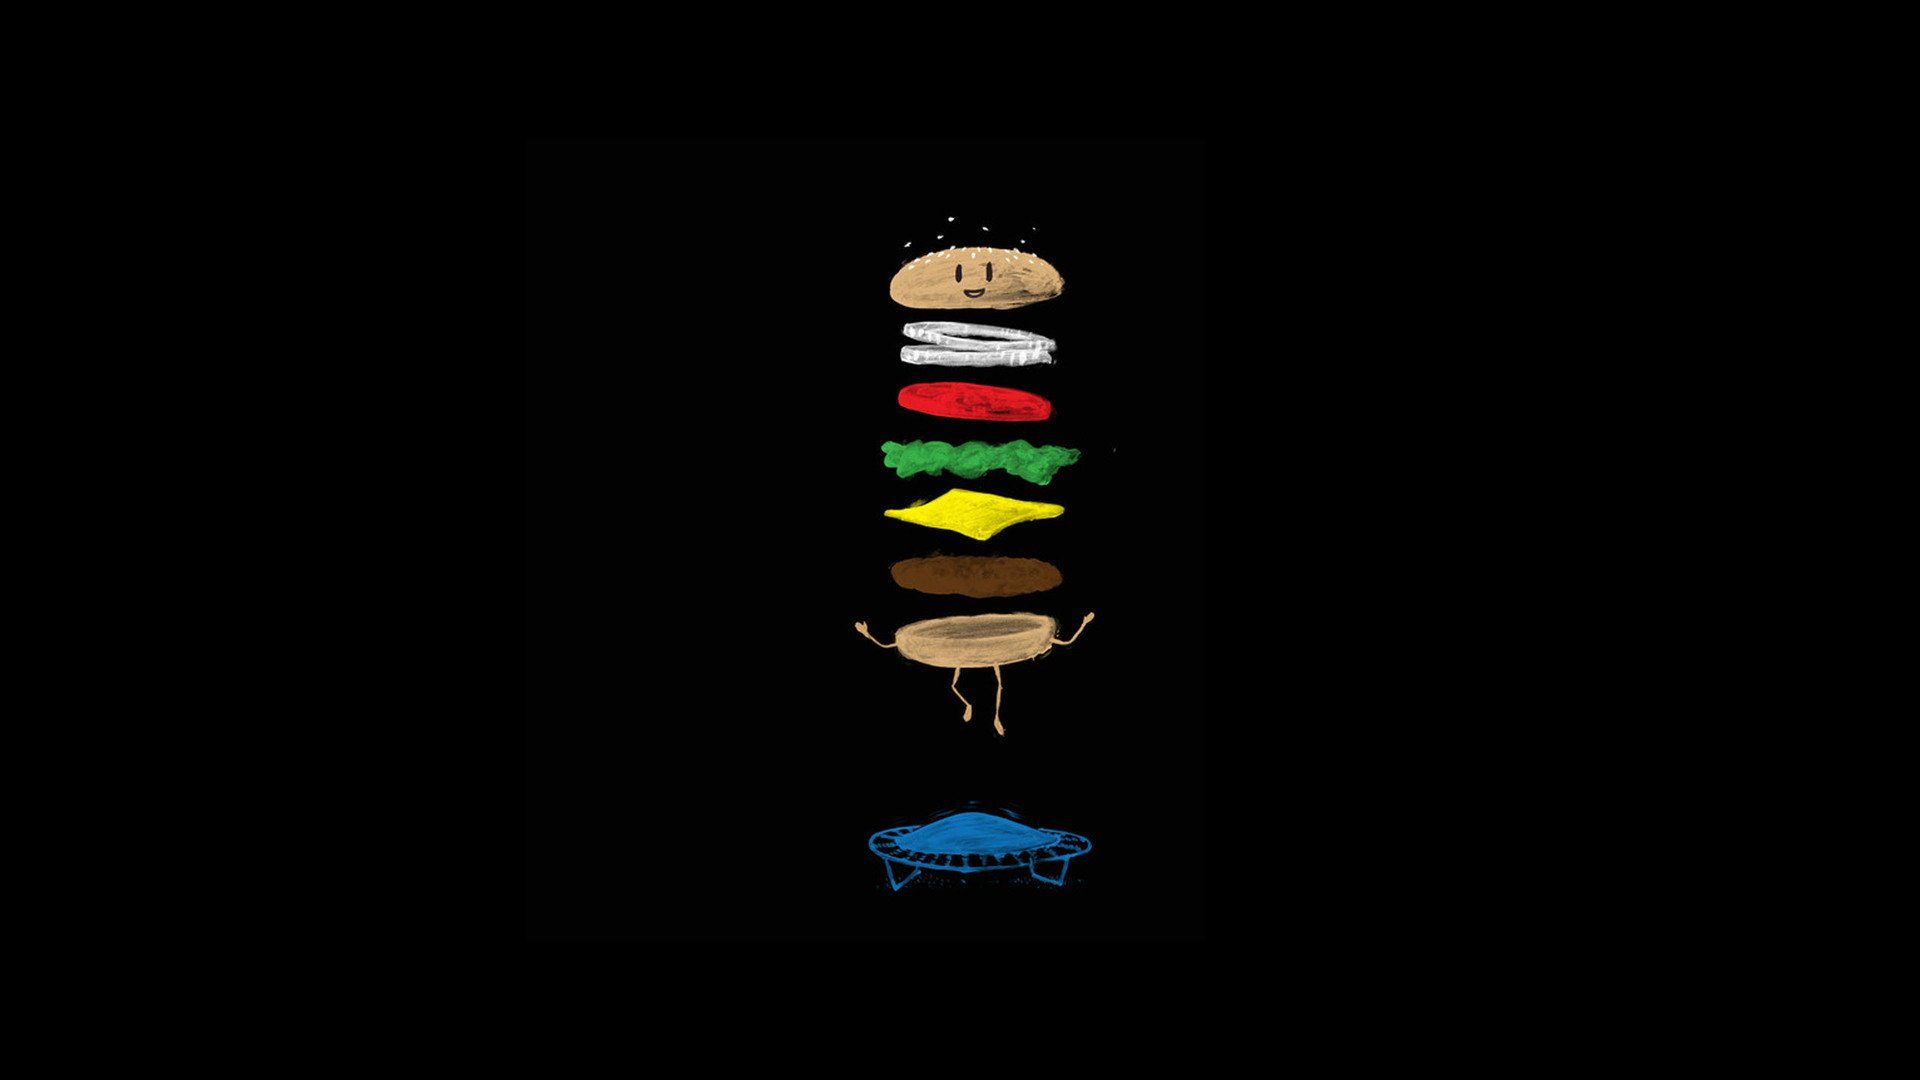 image of eat a burger